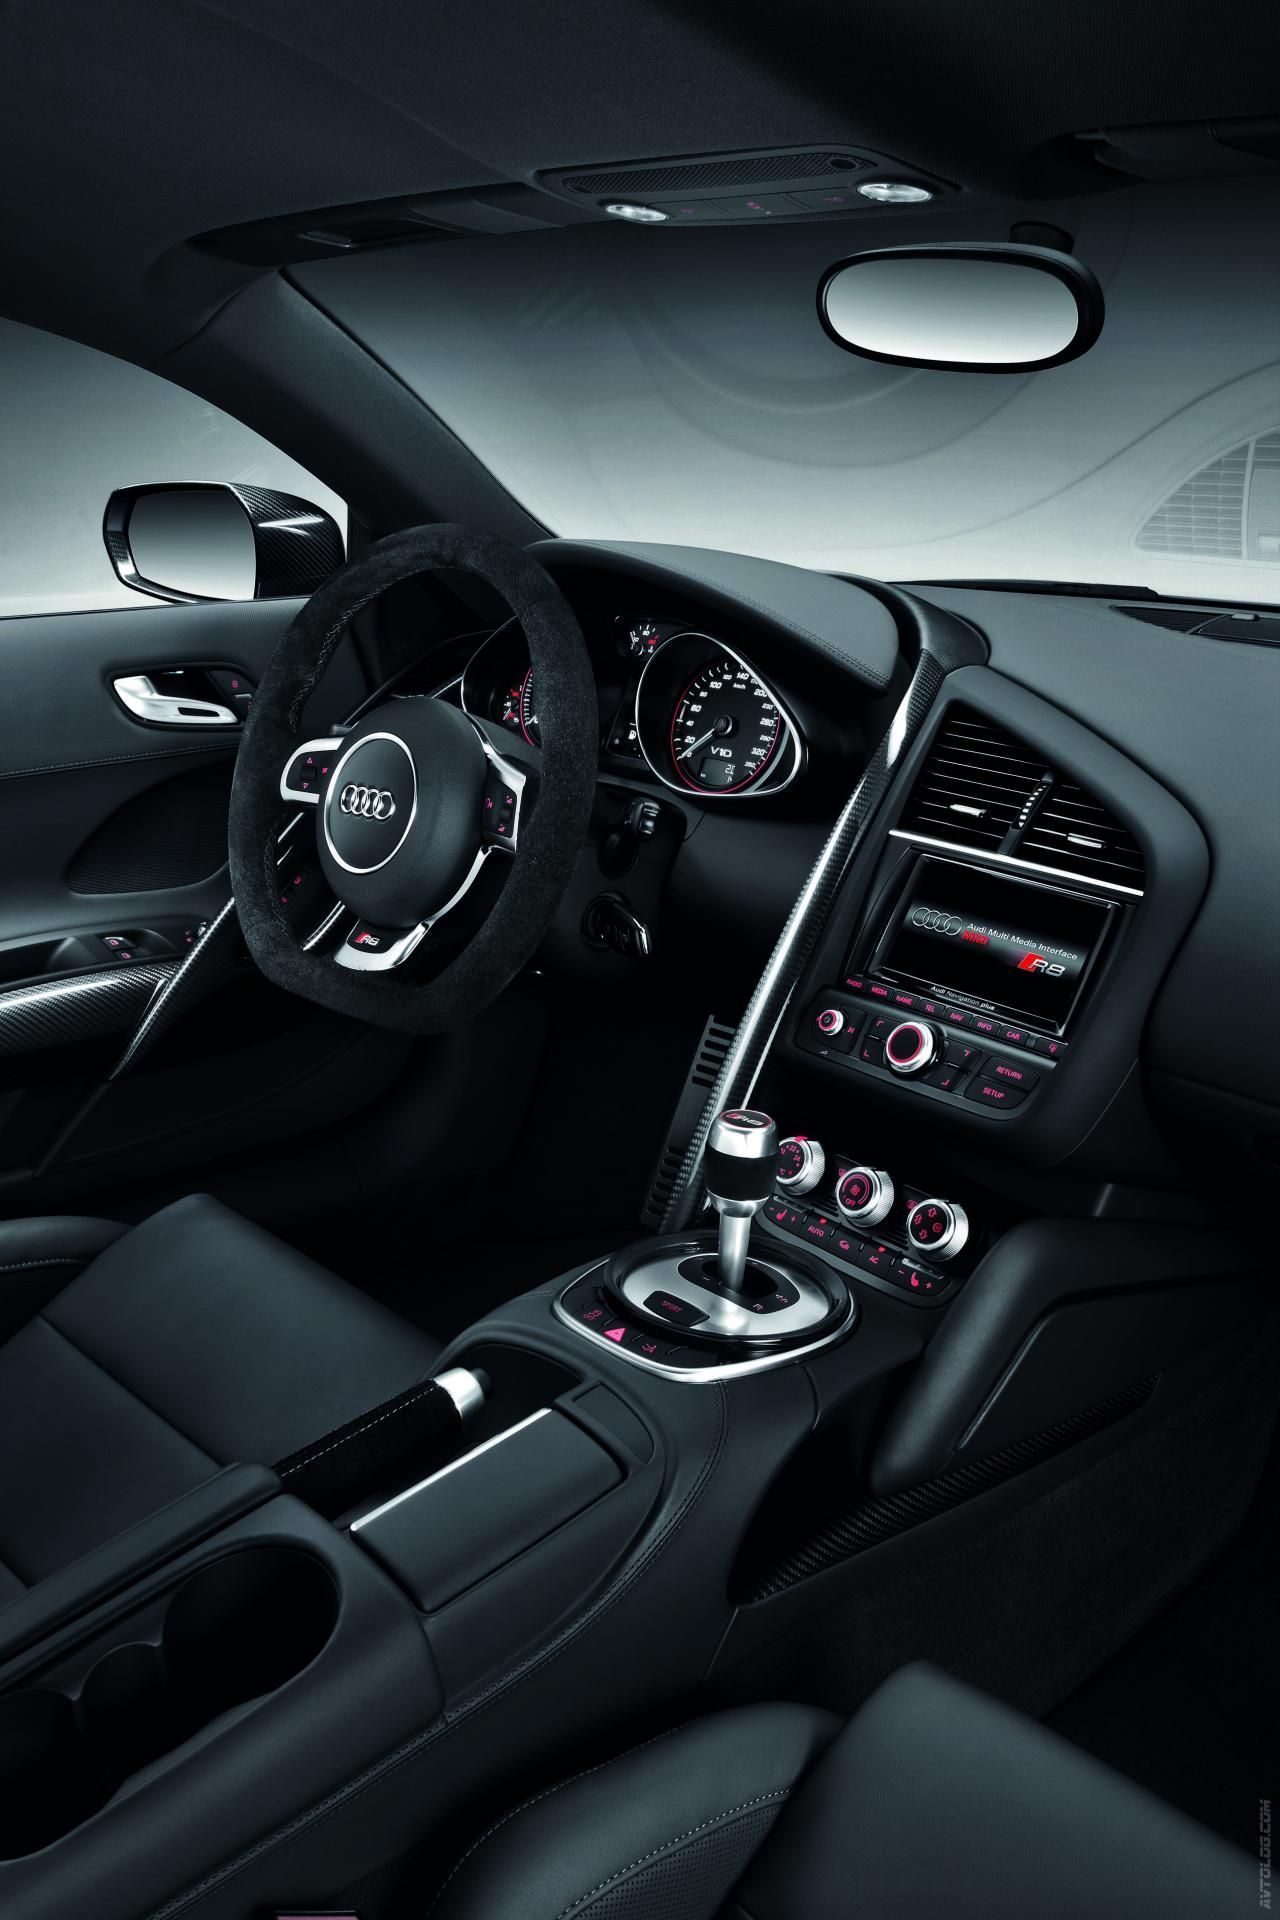 audi r8 v10 plus car cockpits pinterest audi r8 v10. Black Bedroom Furniture Sets. Home Design Ideas